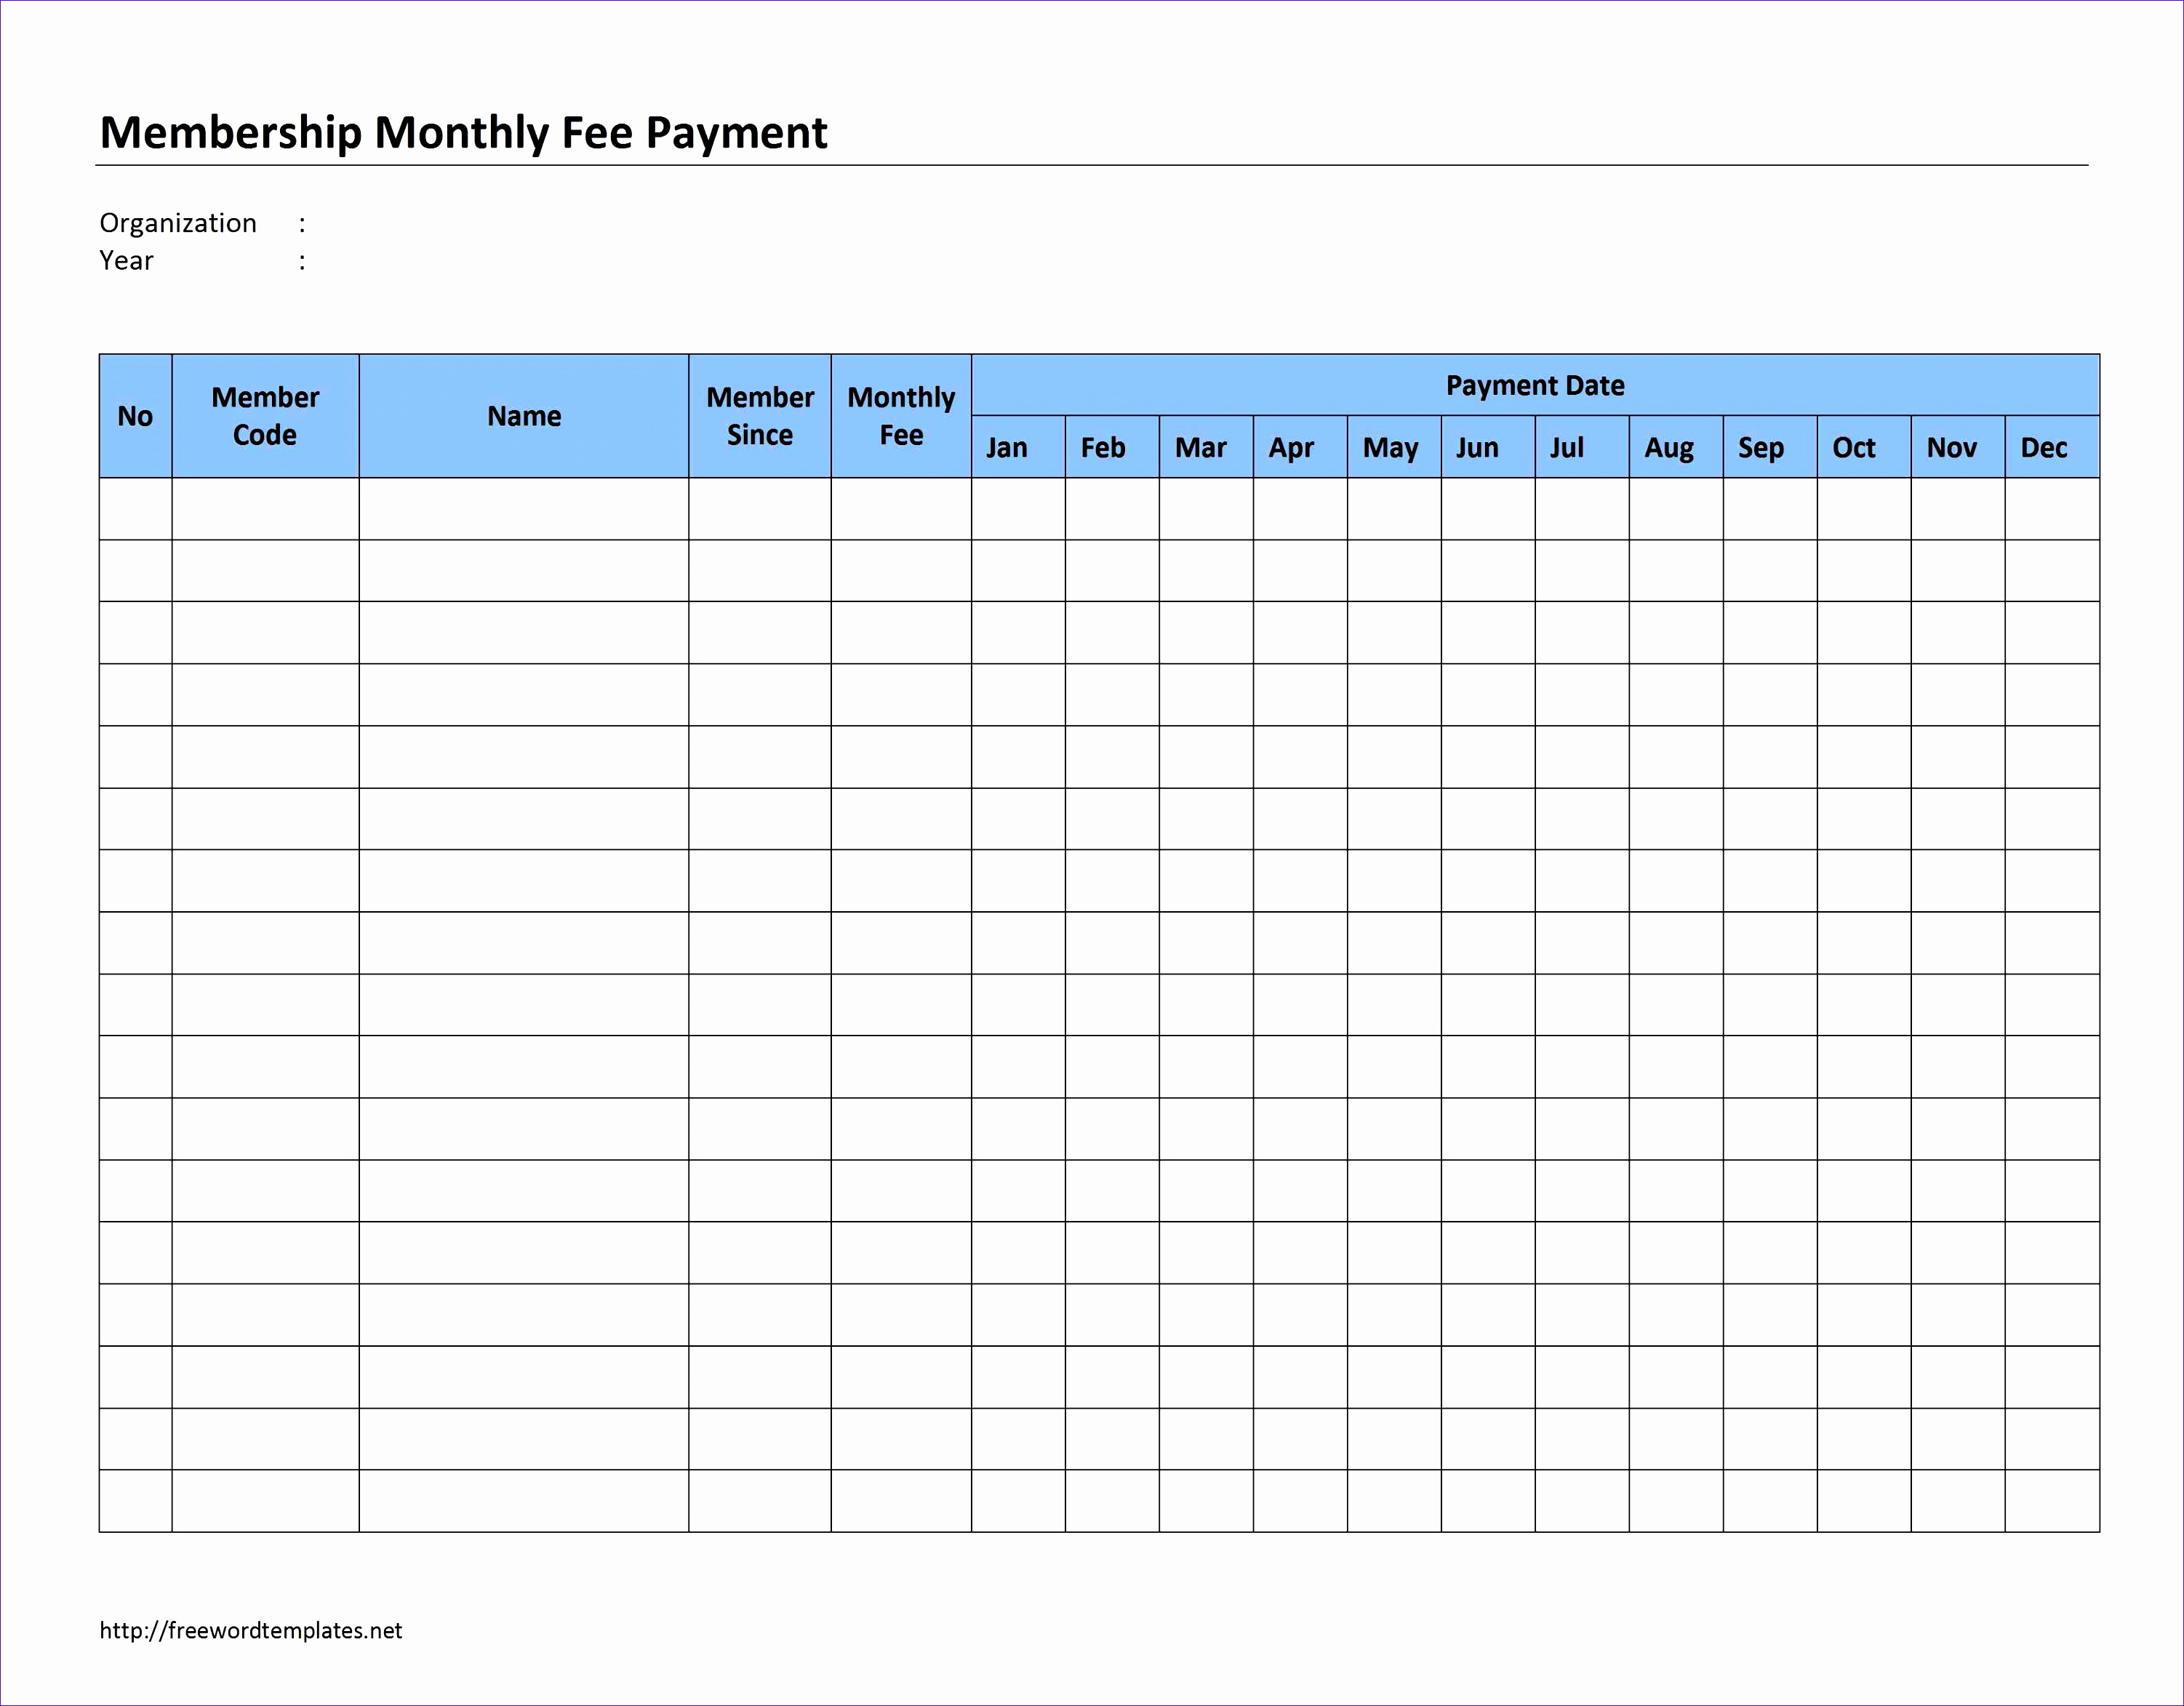 Membership Monthly Fee Payment